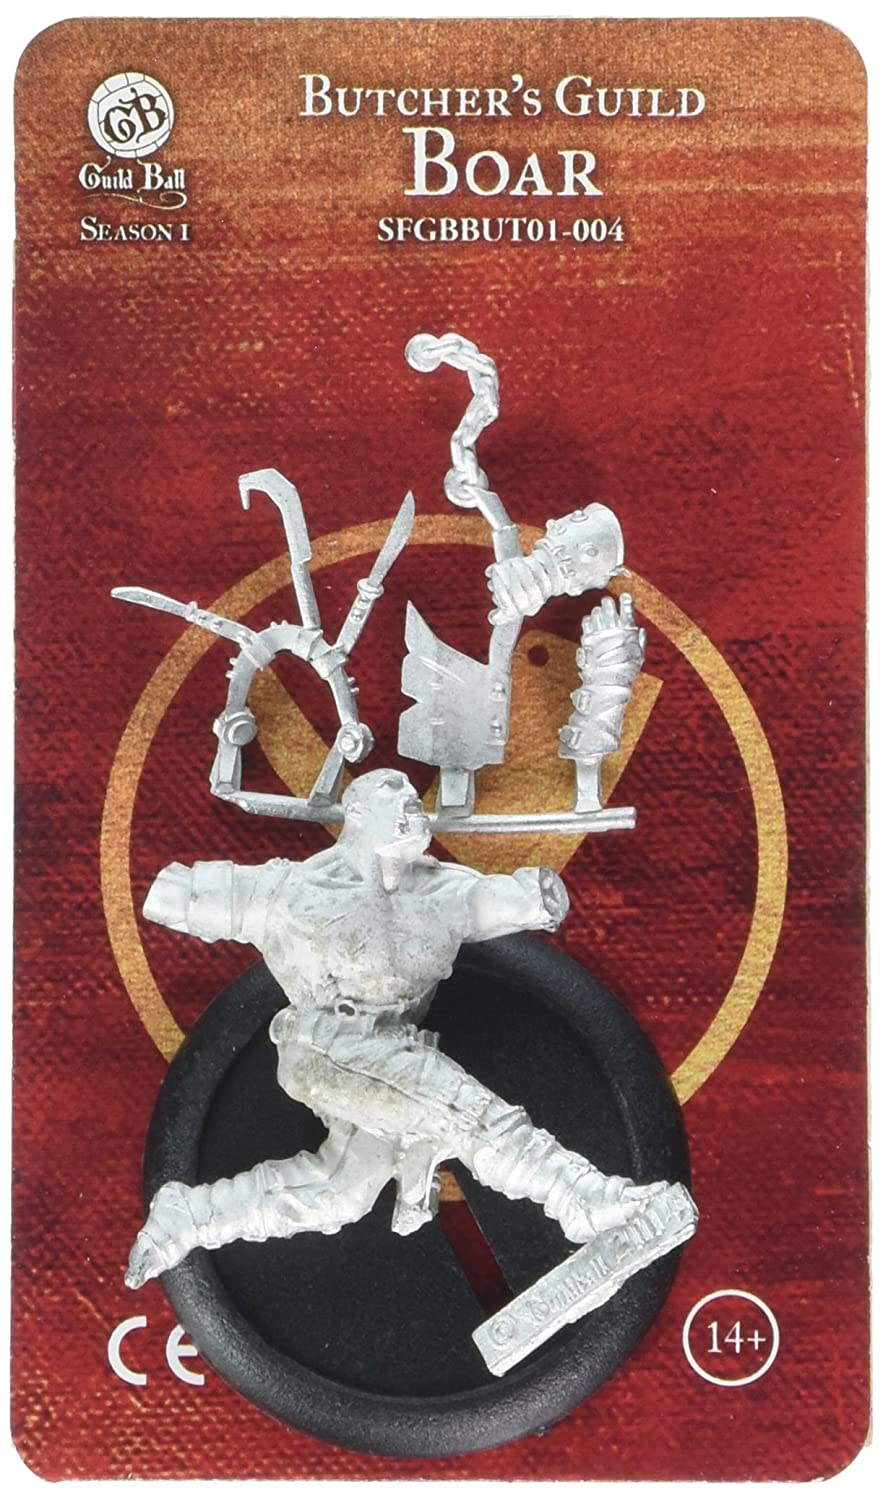 Steamforged Games Guild Ball Butcher Boar Kit